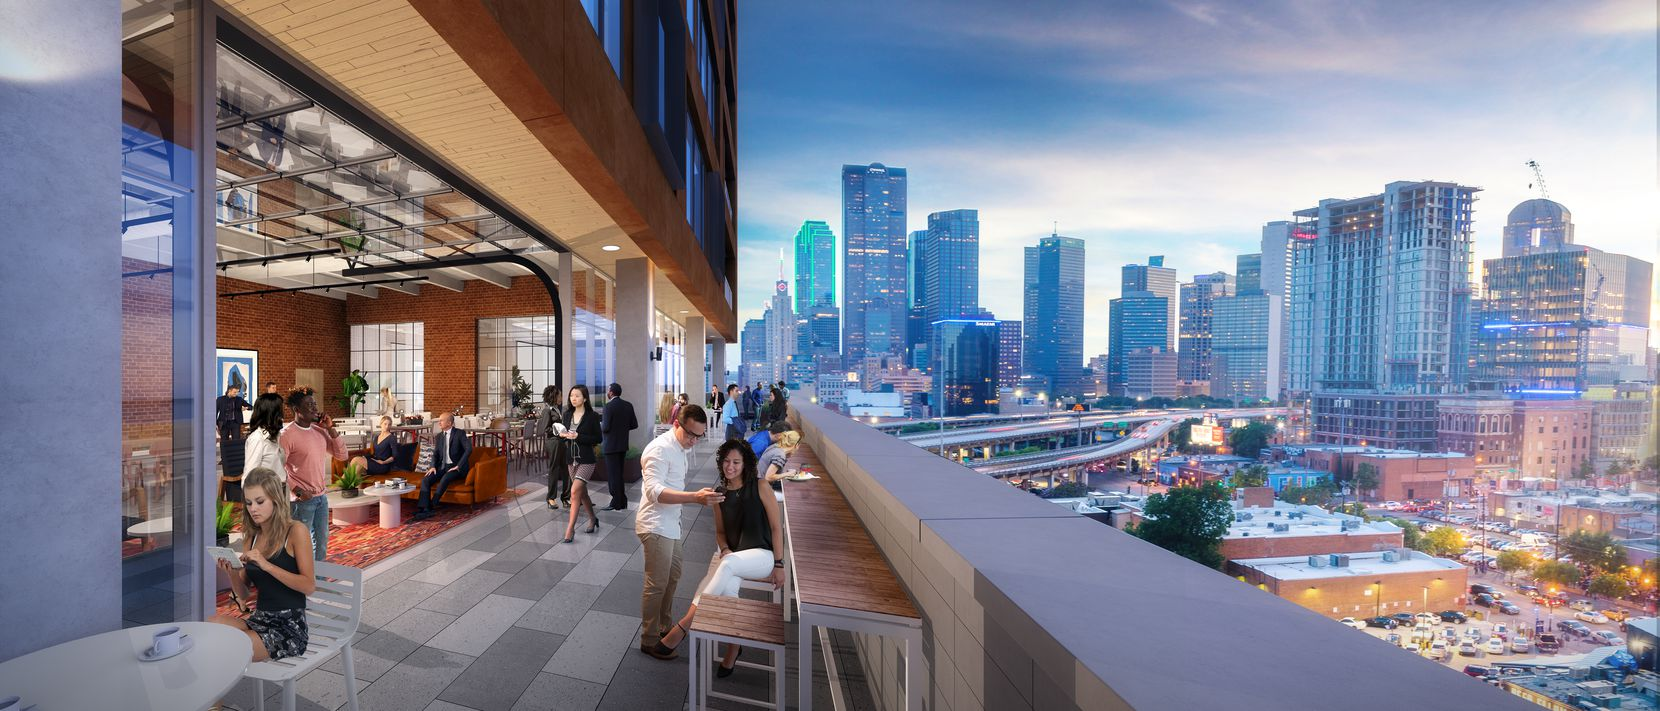 An upper floor terrace in the building overlooks downtown Dallas.